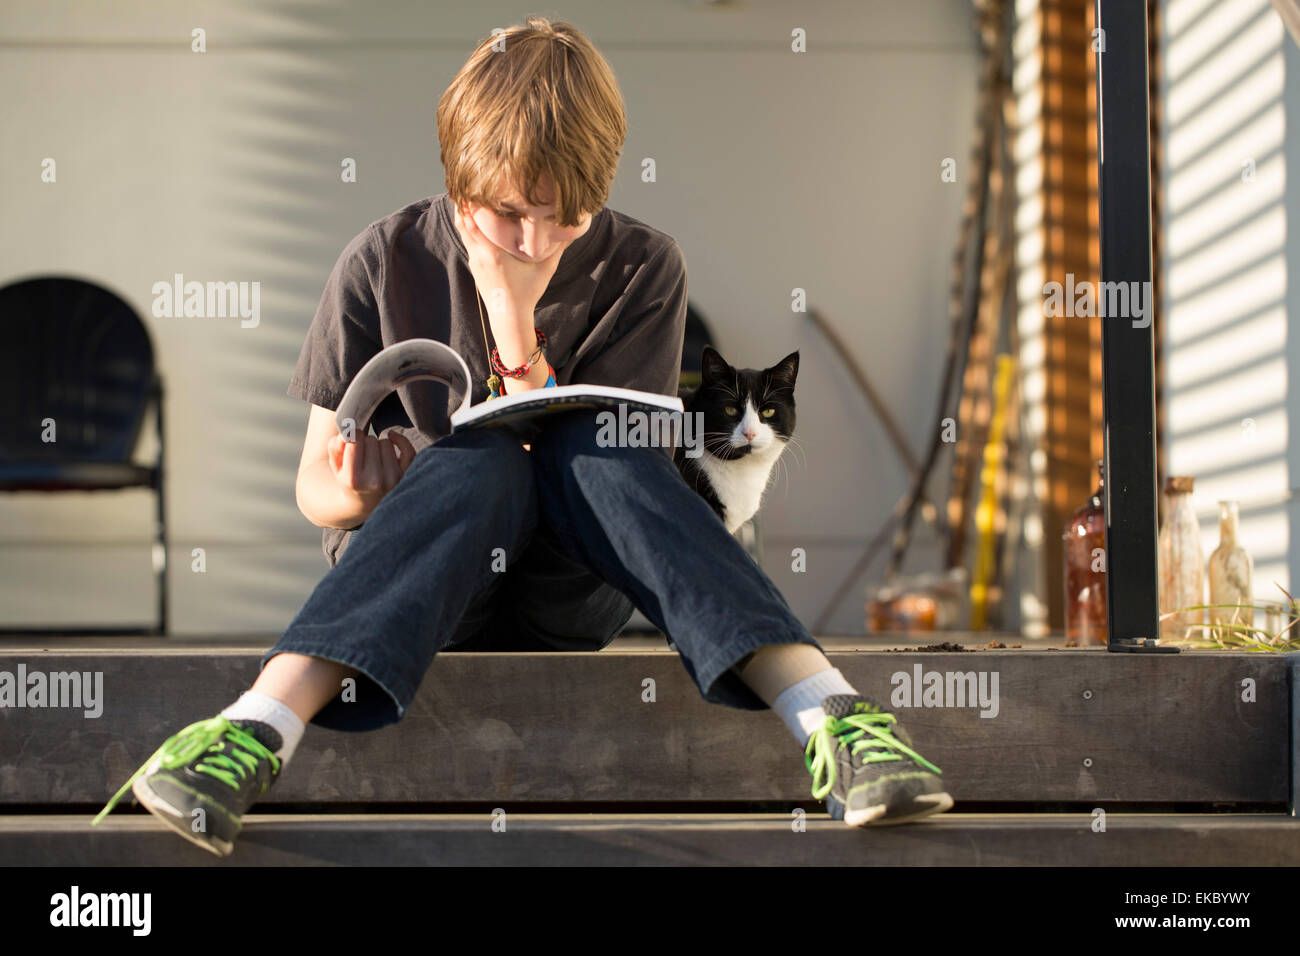 Boy sitting on step reading book, cat peering from behind - Stock Image